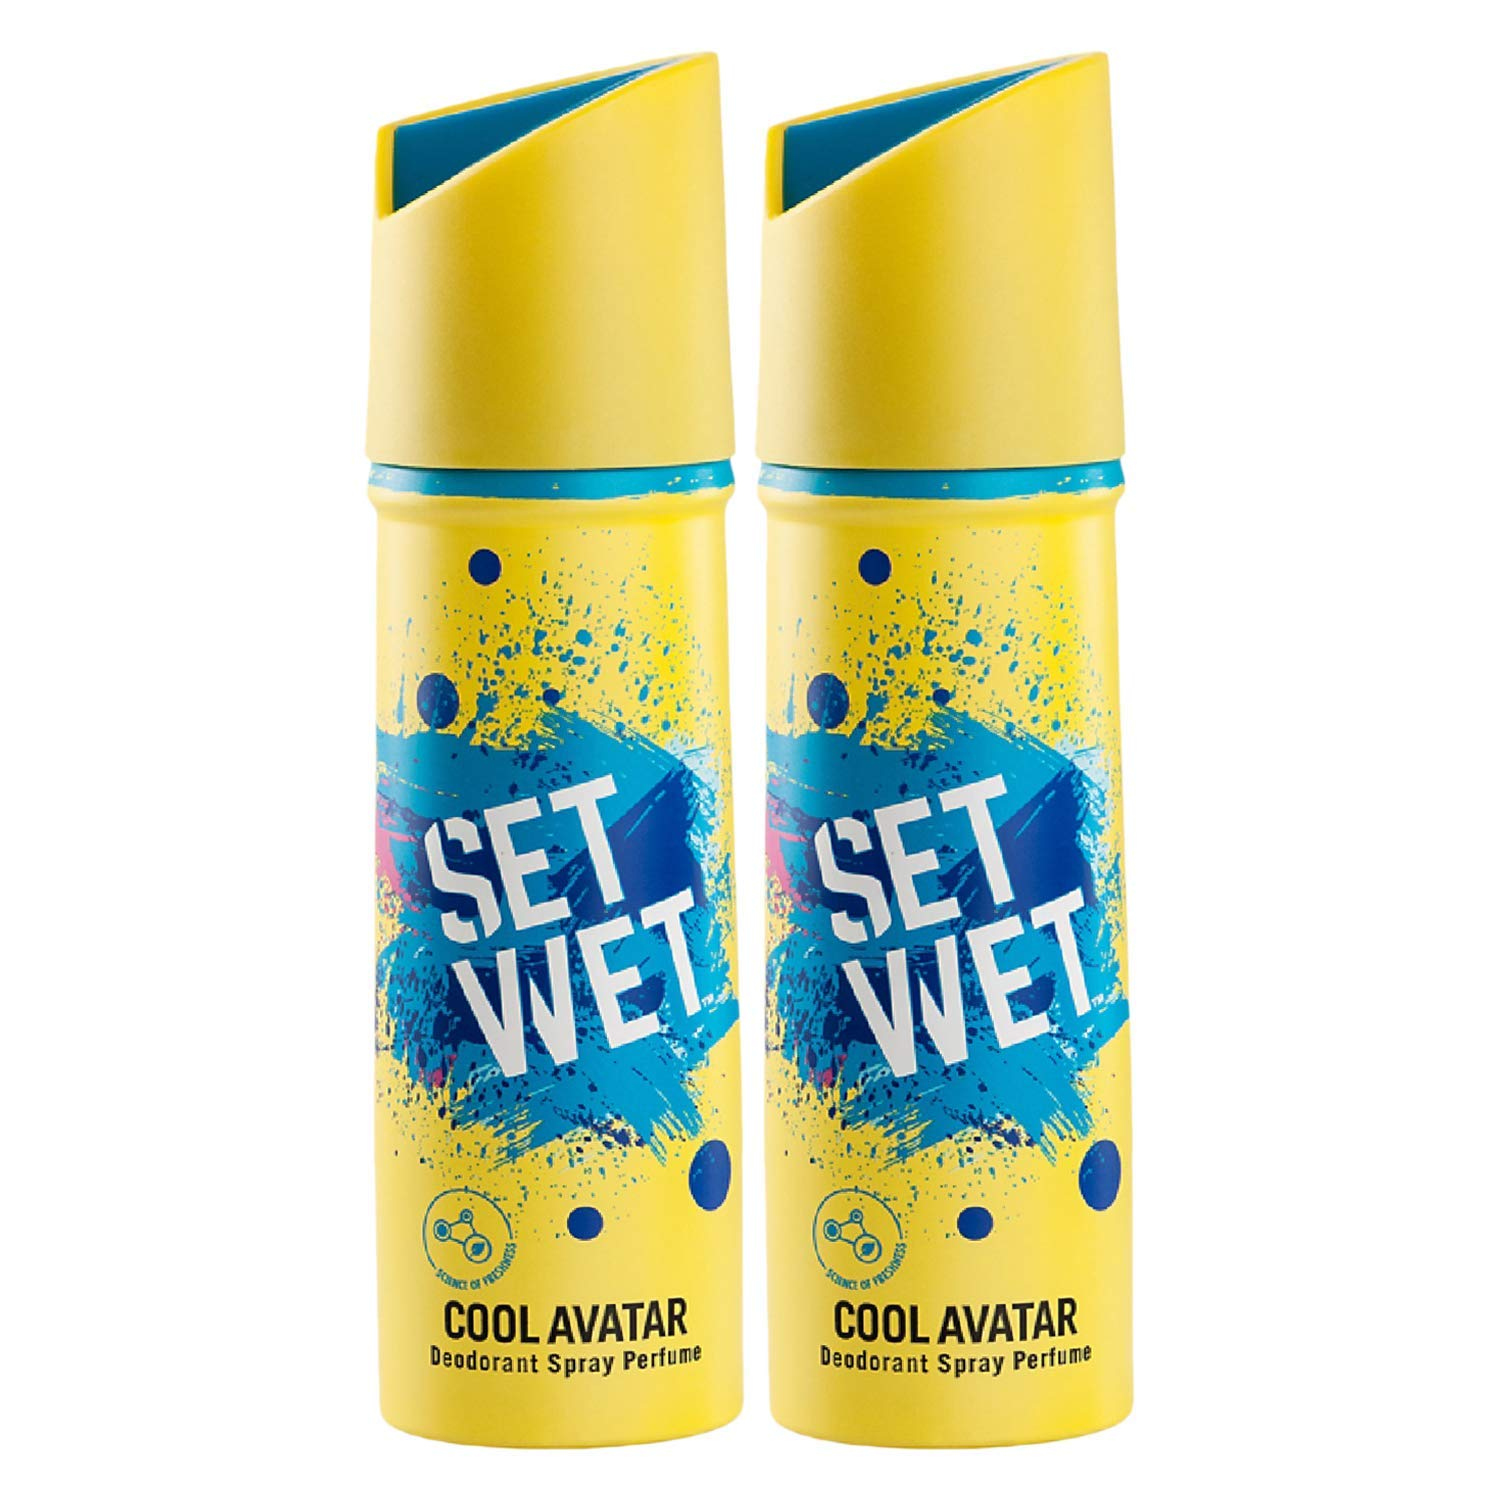 Set Wet Cool famous Avatar Deodorant Body m For 150 Perfume Special price for a limited time Men Spray